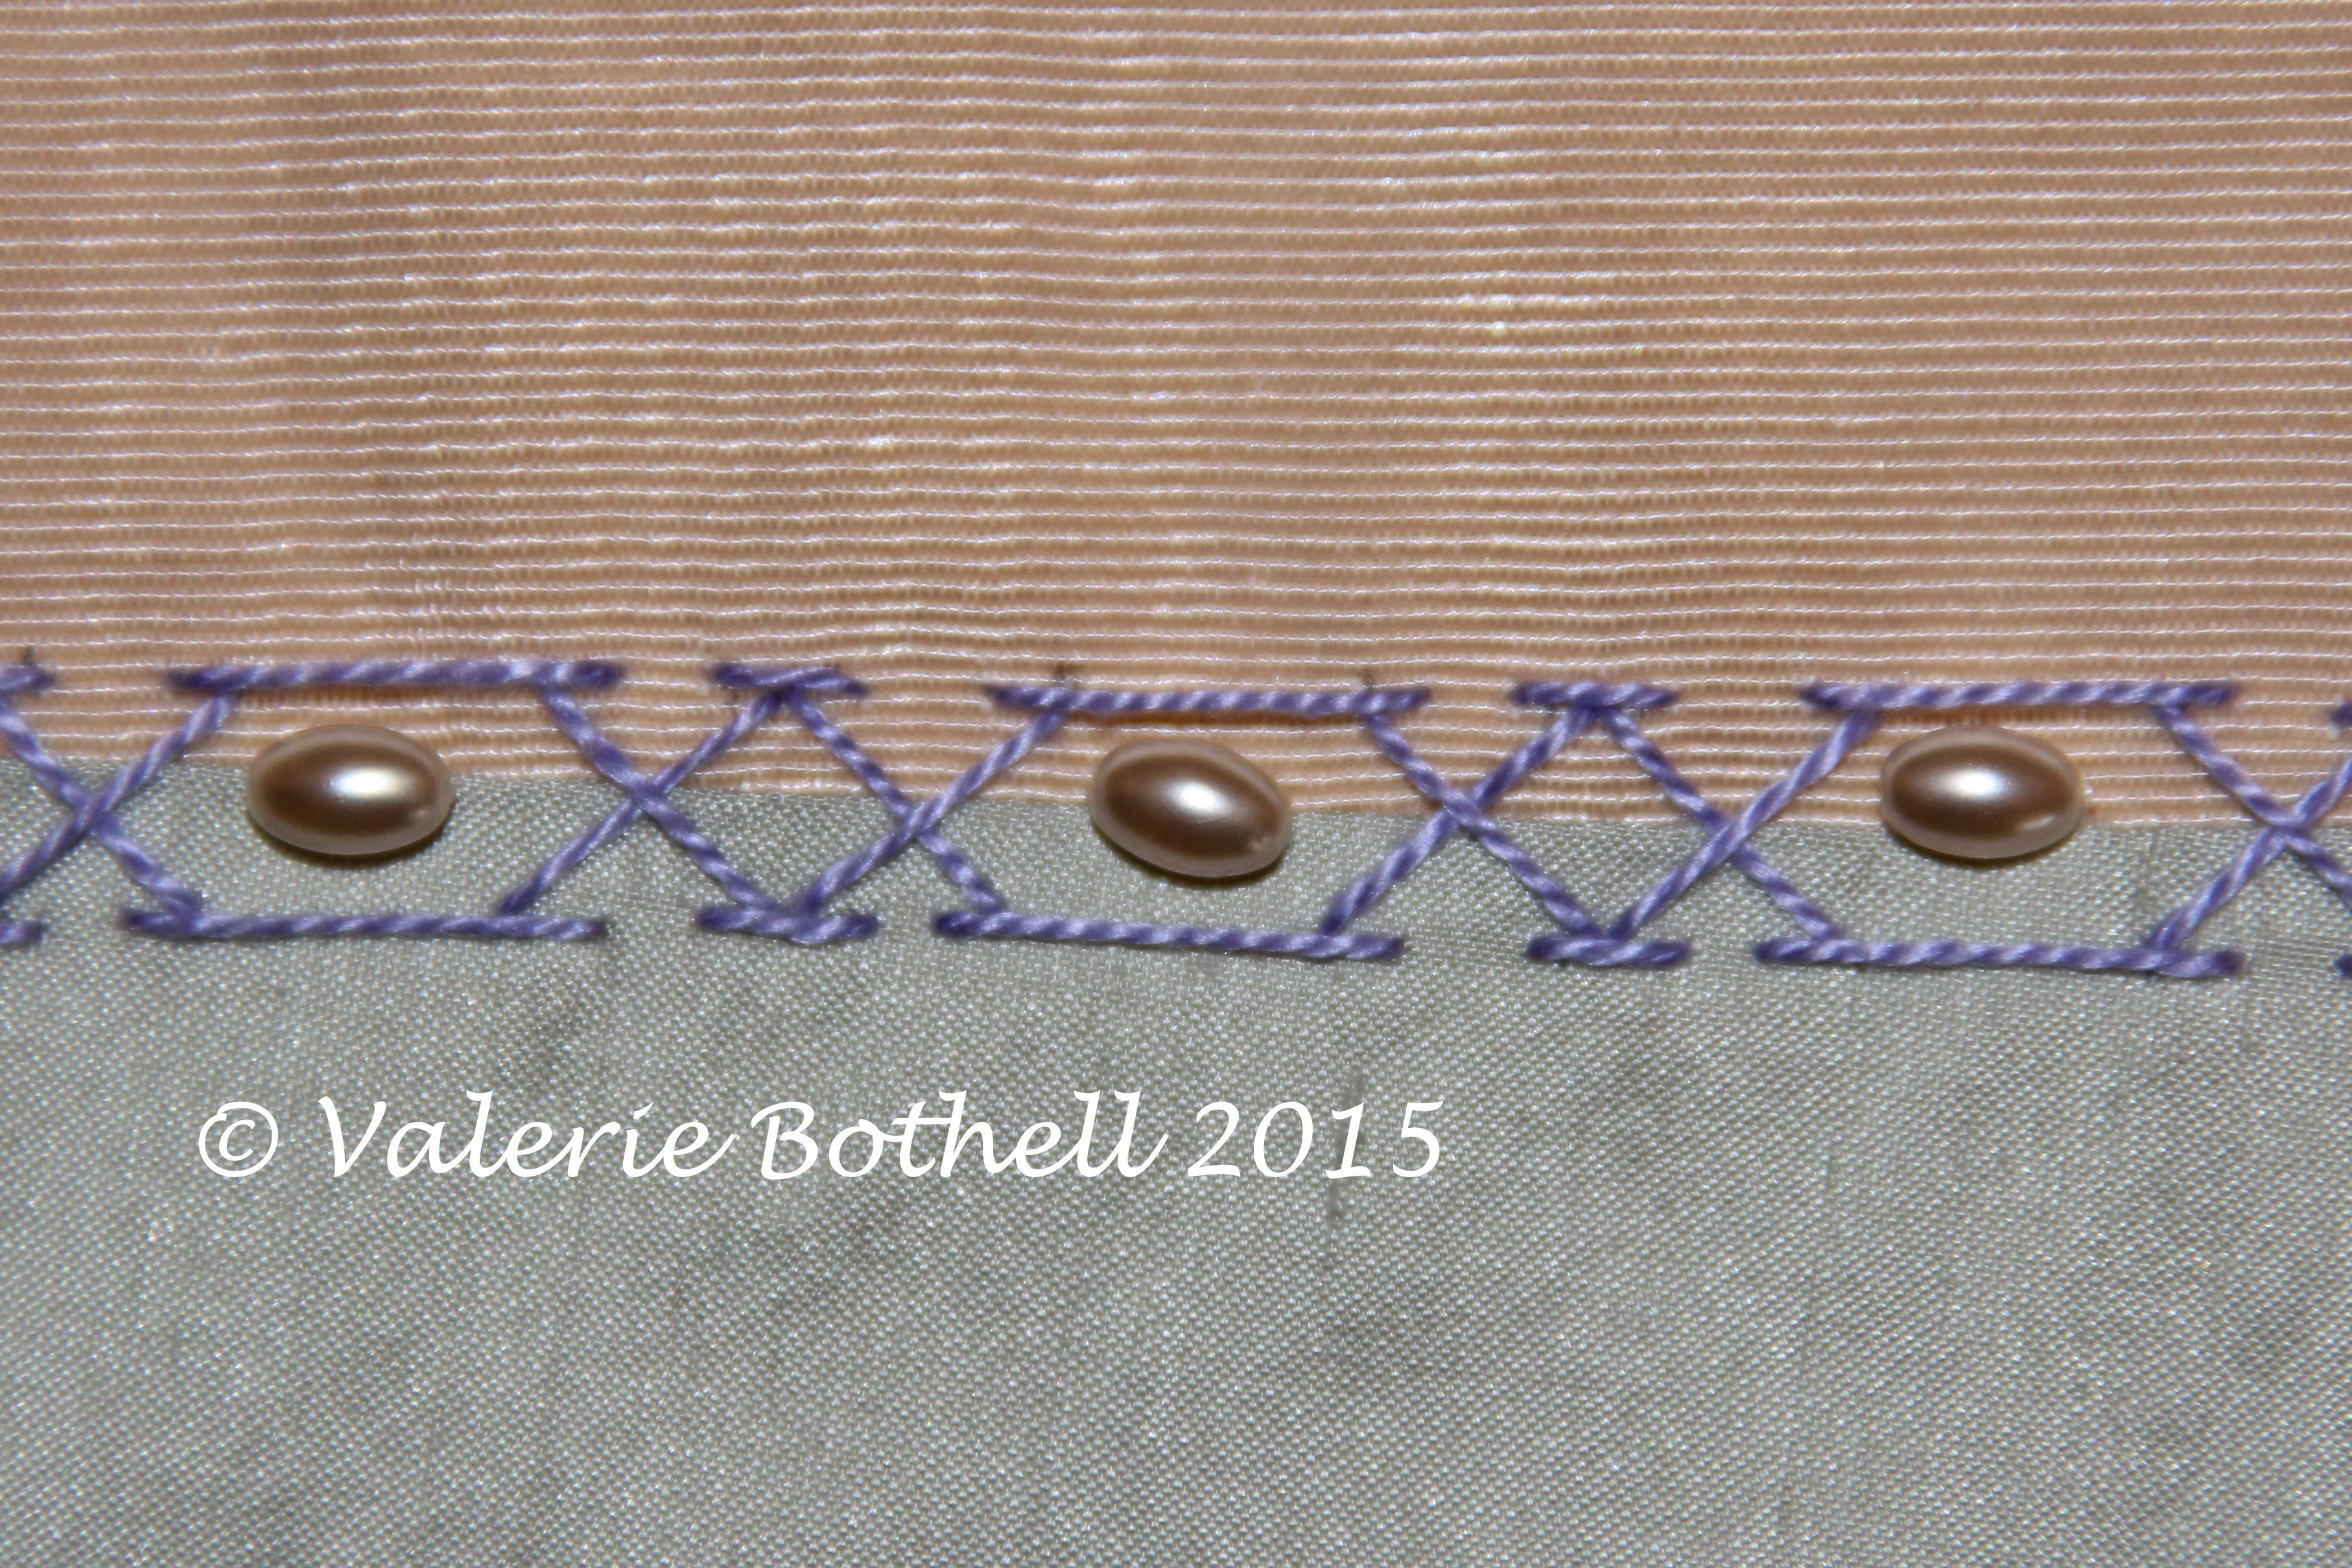 Stitch #104, Double Chevron Stitch + Pearls, notice how one of the Chevron Stitches has been manipulated.©Valerie Bothell 2015